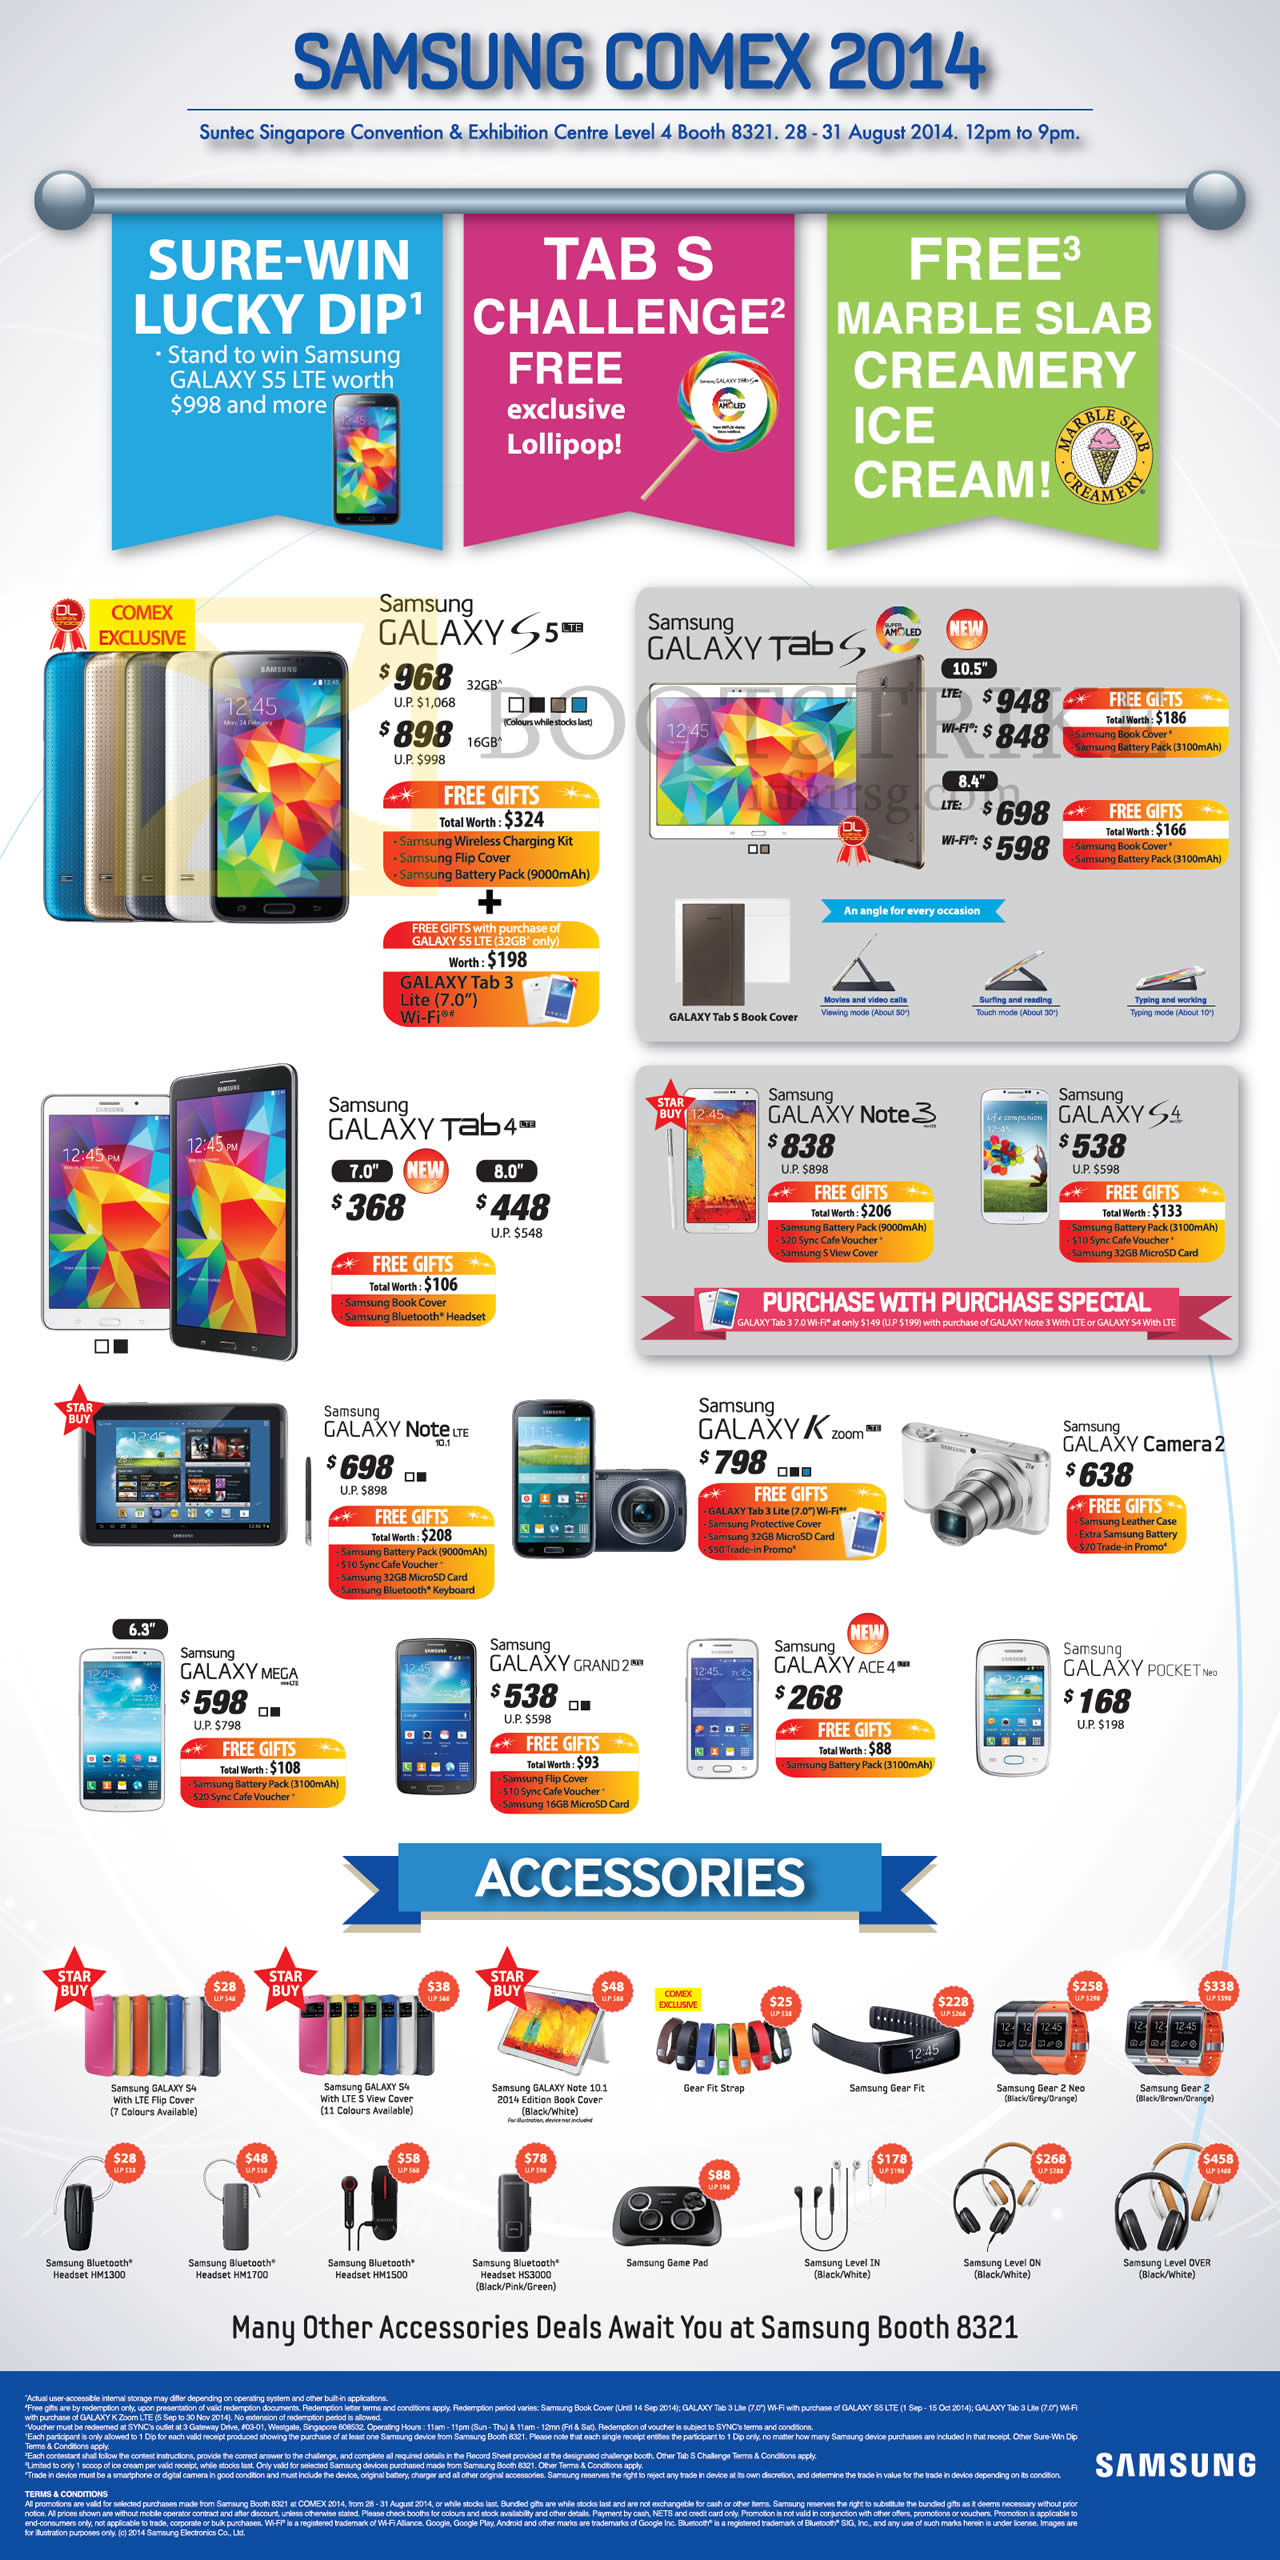 COMEX 2014 price list image brochure of Samsung Smartphones, Tablets, Accessories Galaxy S5, Tab S 10.5 8.4, Tab 4 7.0 8.0, Note 3, S4, Note 10.1 LTE, K Zoom, Camera 2, Mega, Grand 2, Ace 4, Pocket Neo